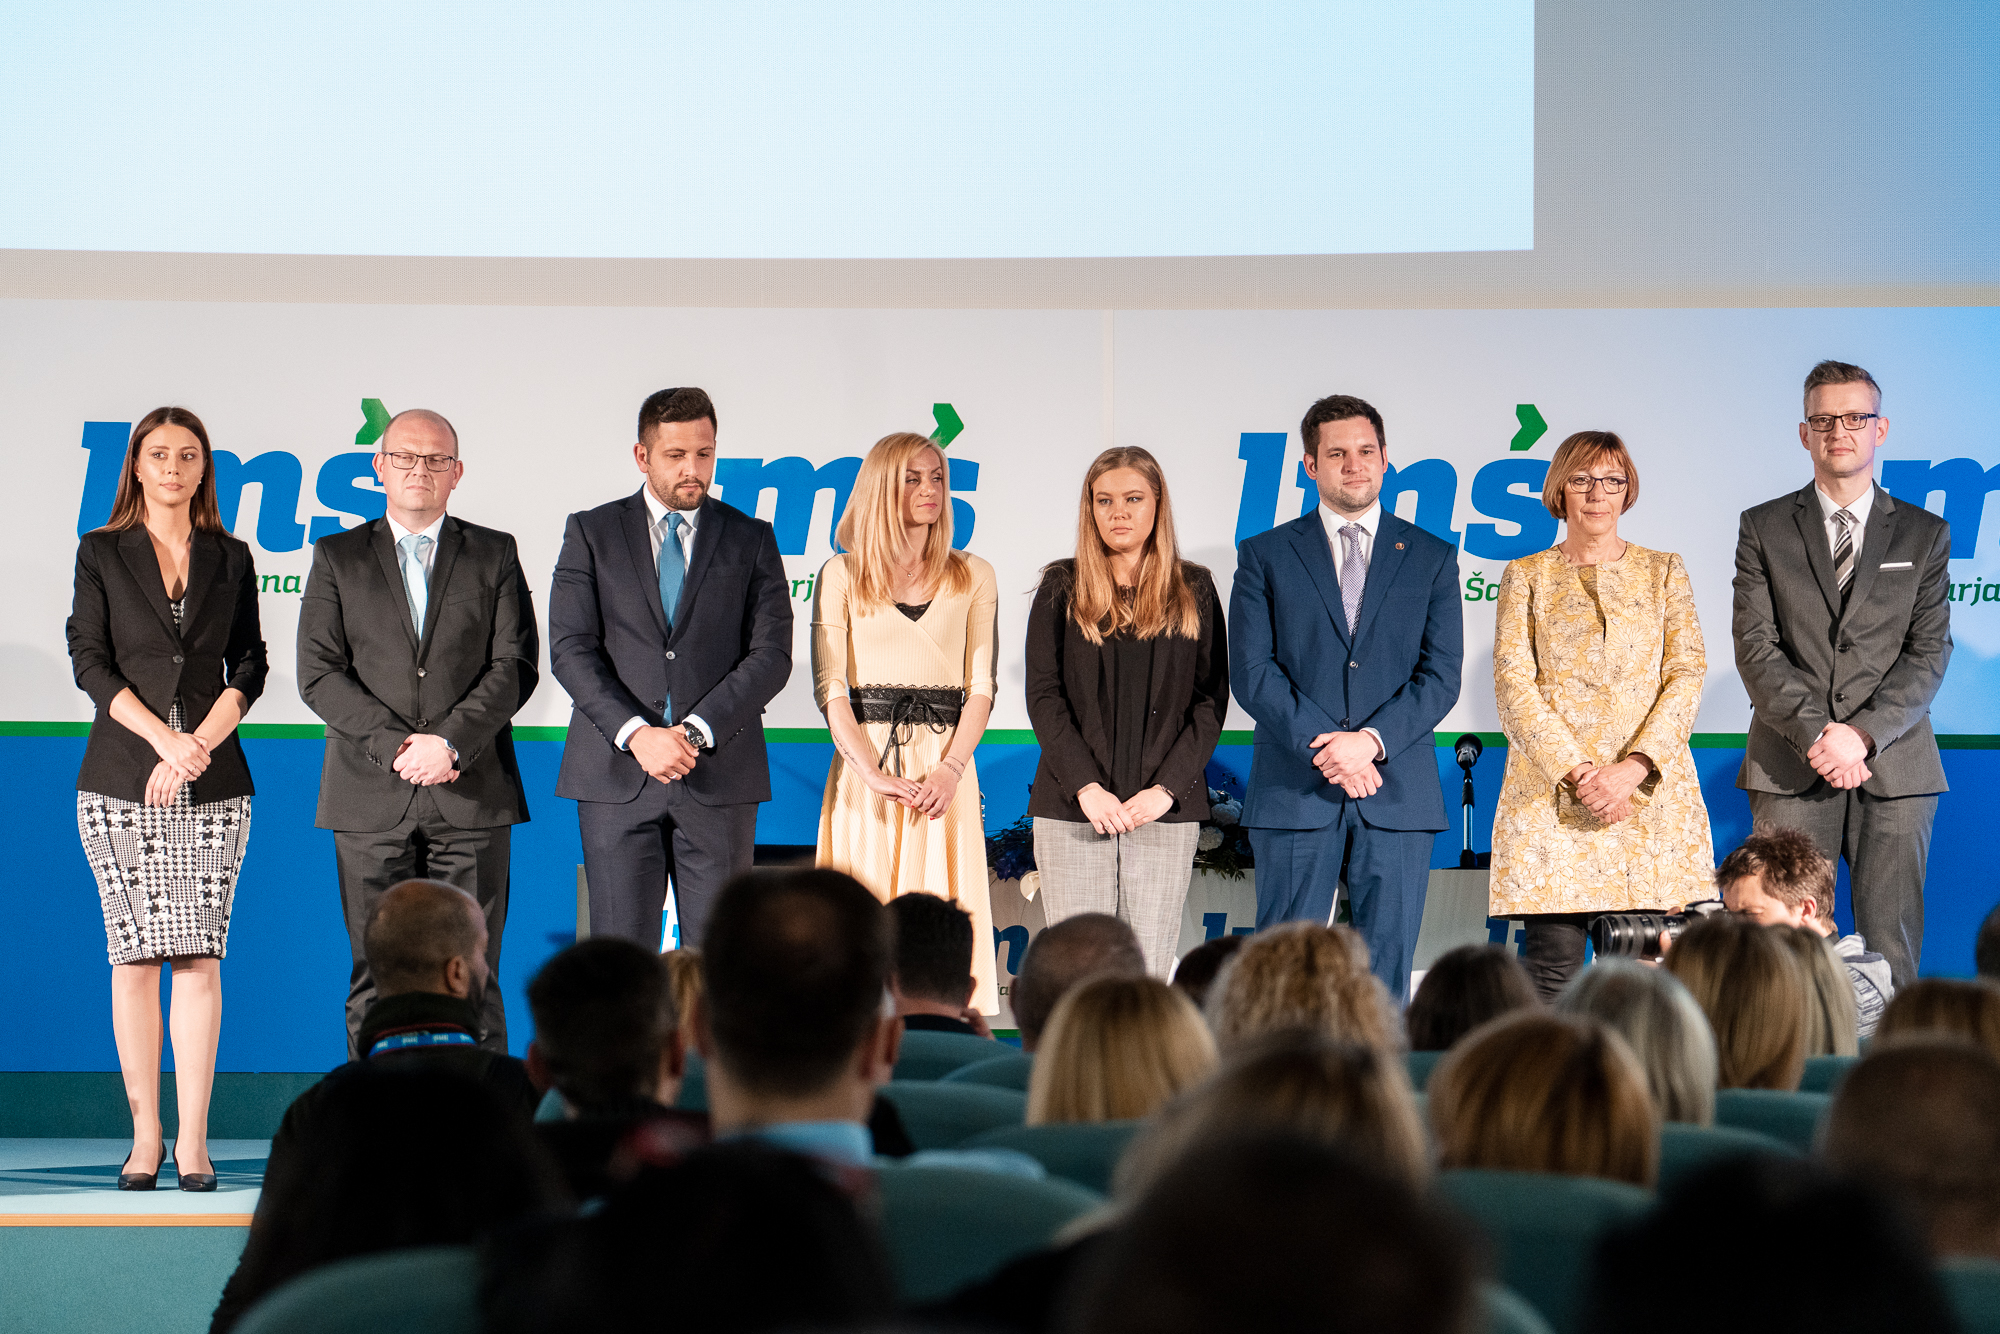 Candidates for the EU elections - Irena Joveva, dr. Klemen Grošelj, Edis Rujović, Tina Heferle, Jasna Ružicki, Luka Kočevar, dr. Justina Erčulj and Rudi Spruk - on the stage of the Fifth Congress of Lista Marjana Šarca in Trbovlje the stage of the Fifth Congress of Lista Marjana Šarca in Trbovlje